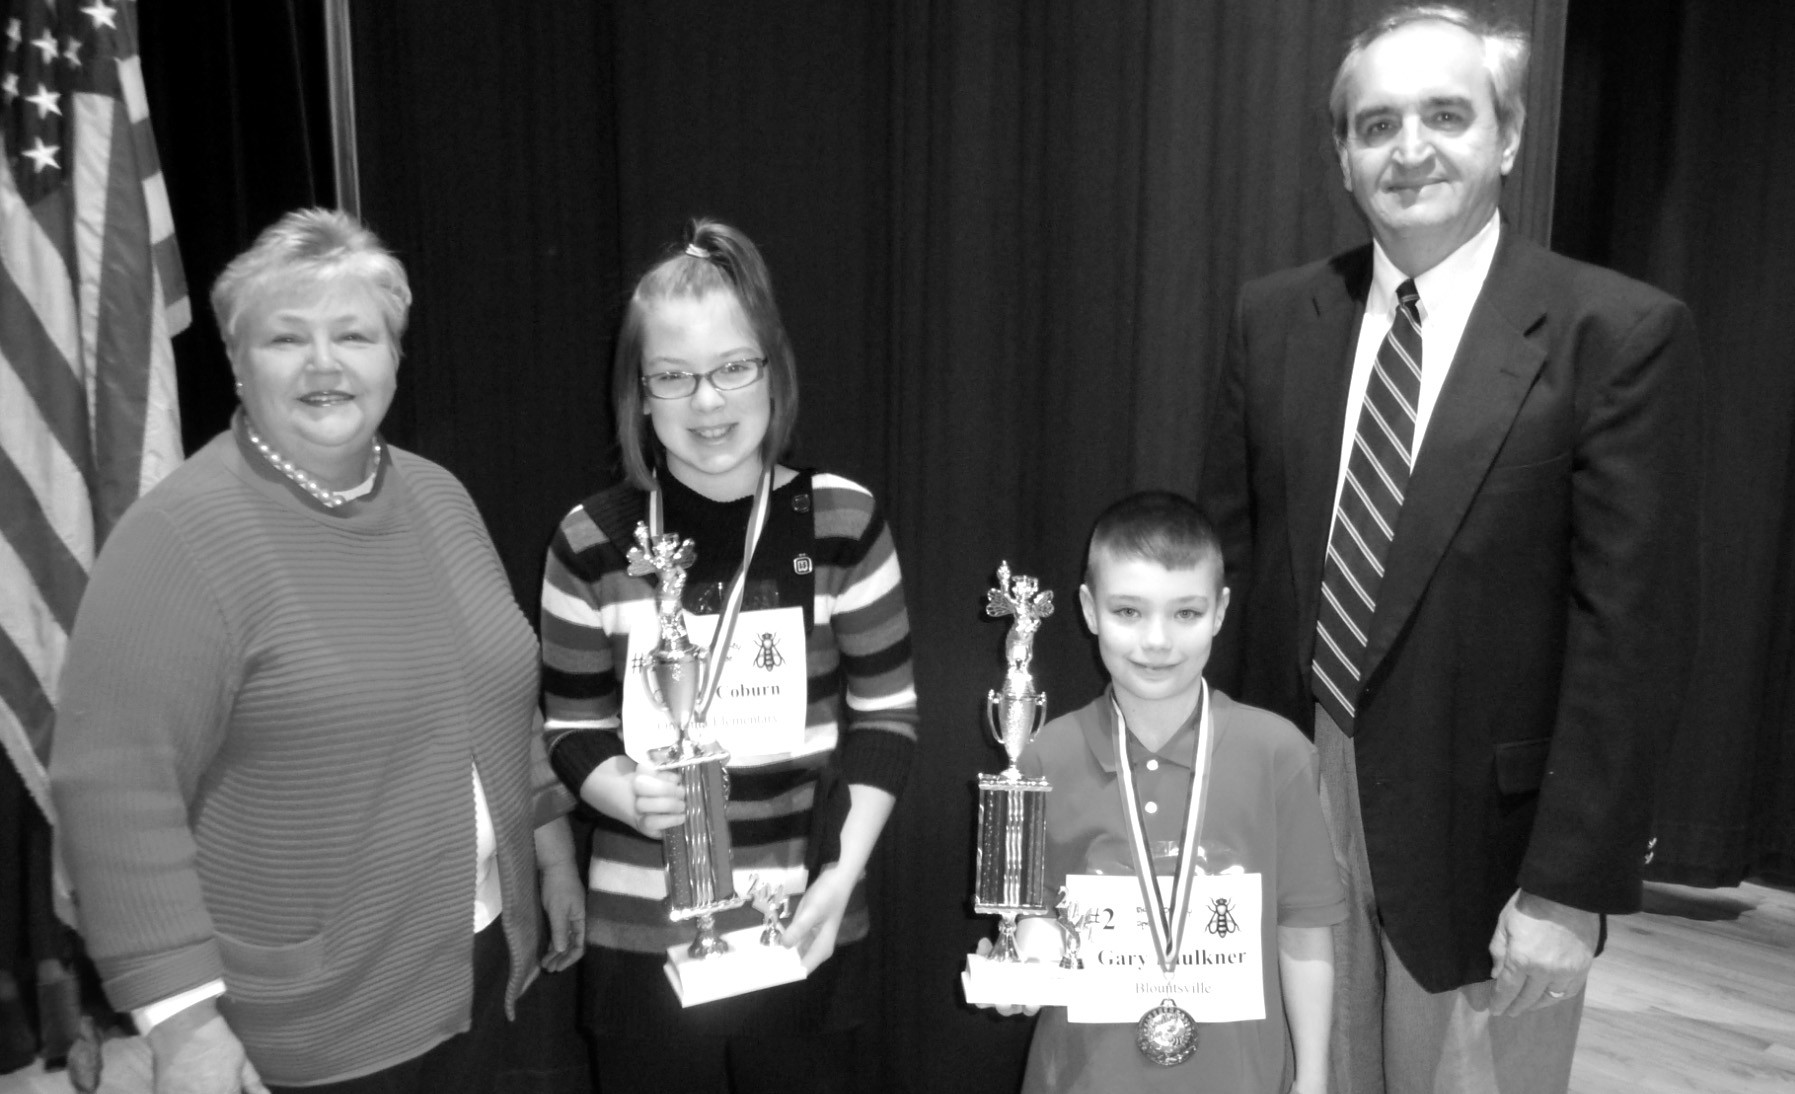 Gracie Coburn, sixth-grader at Oneonta Elementary School, won the 2011 Blount County Spelling Bee Feb. 8 in a spell-off at J.B. Pennington High School auditorium. The hotly contested event ran for 22 rounds and 80 words before Coburn was declared the winner after successfully spelling alcove. Gary Faulkner, a fifth-grader at Blountsville Elementary, was the runner-up. Also shown above are Jackie Sivley, new member of the Blount County school board, who served as one of the judges for the event, and county Supt. Jim Carr, who presented participants with awards honoring their accomplishments. Others working on the event included Stoney Beavers, Mitchie Neel, Donna Martin, and Cindy Williams of the Blount County Schools central staff and Craig Sosebee and Jessica Musso of J. B. Pennington High School. J.B. Pennington Ambassadors hosted and added a flair of class to the event in their snazzy black blazers.